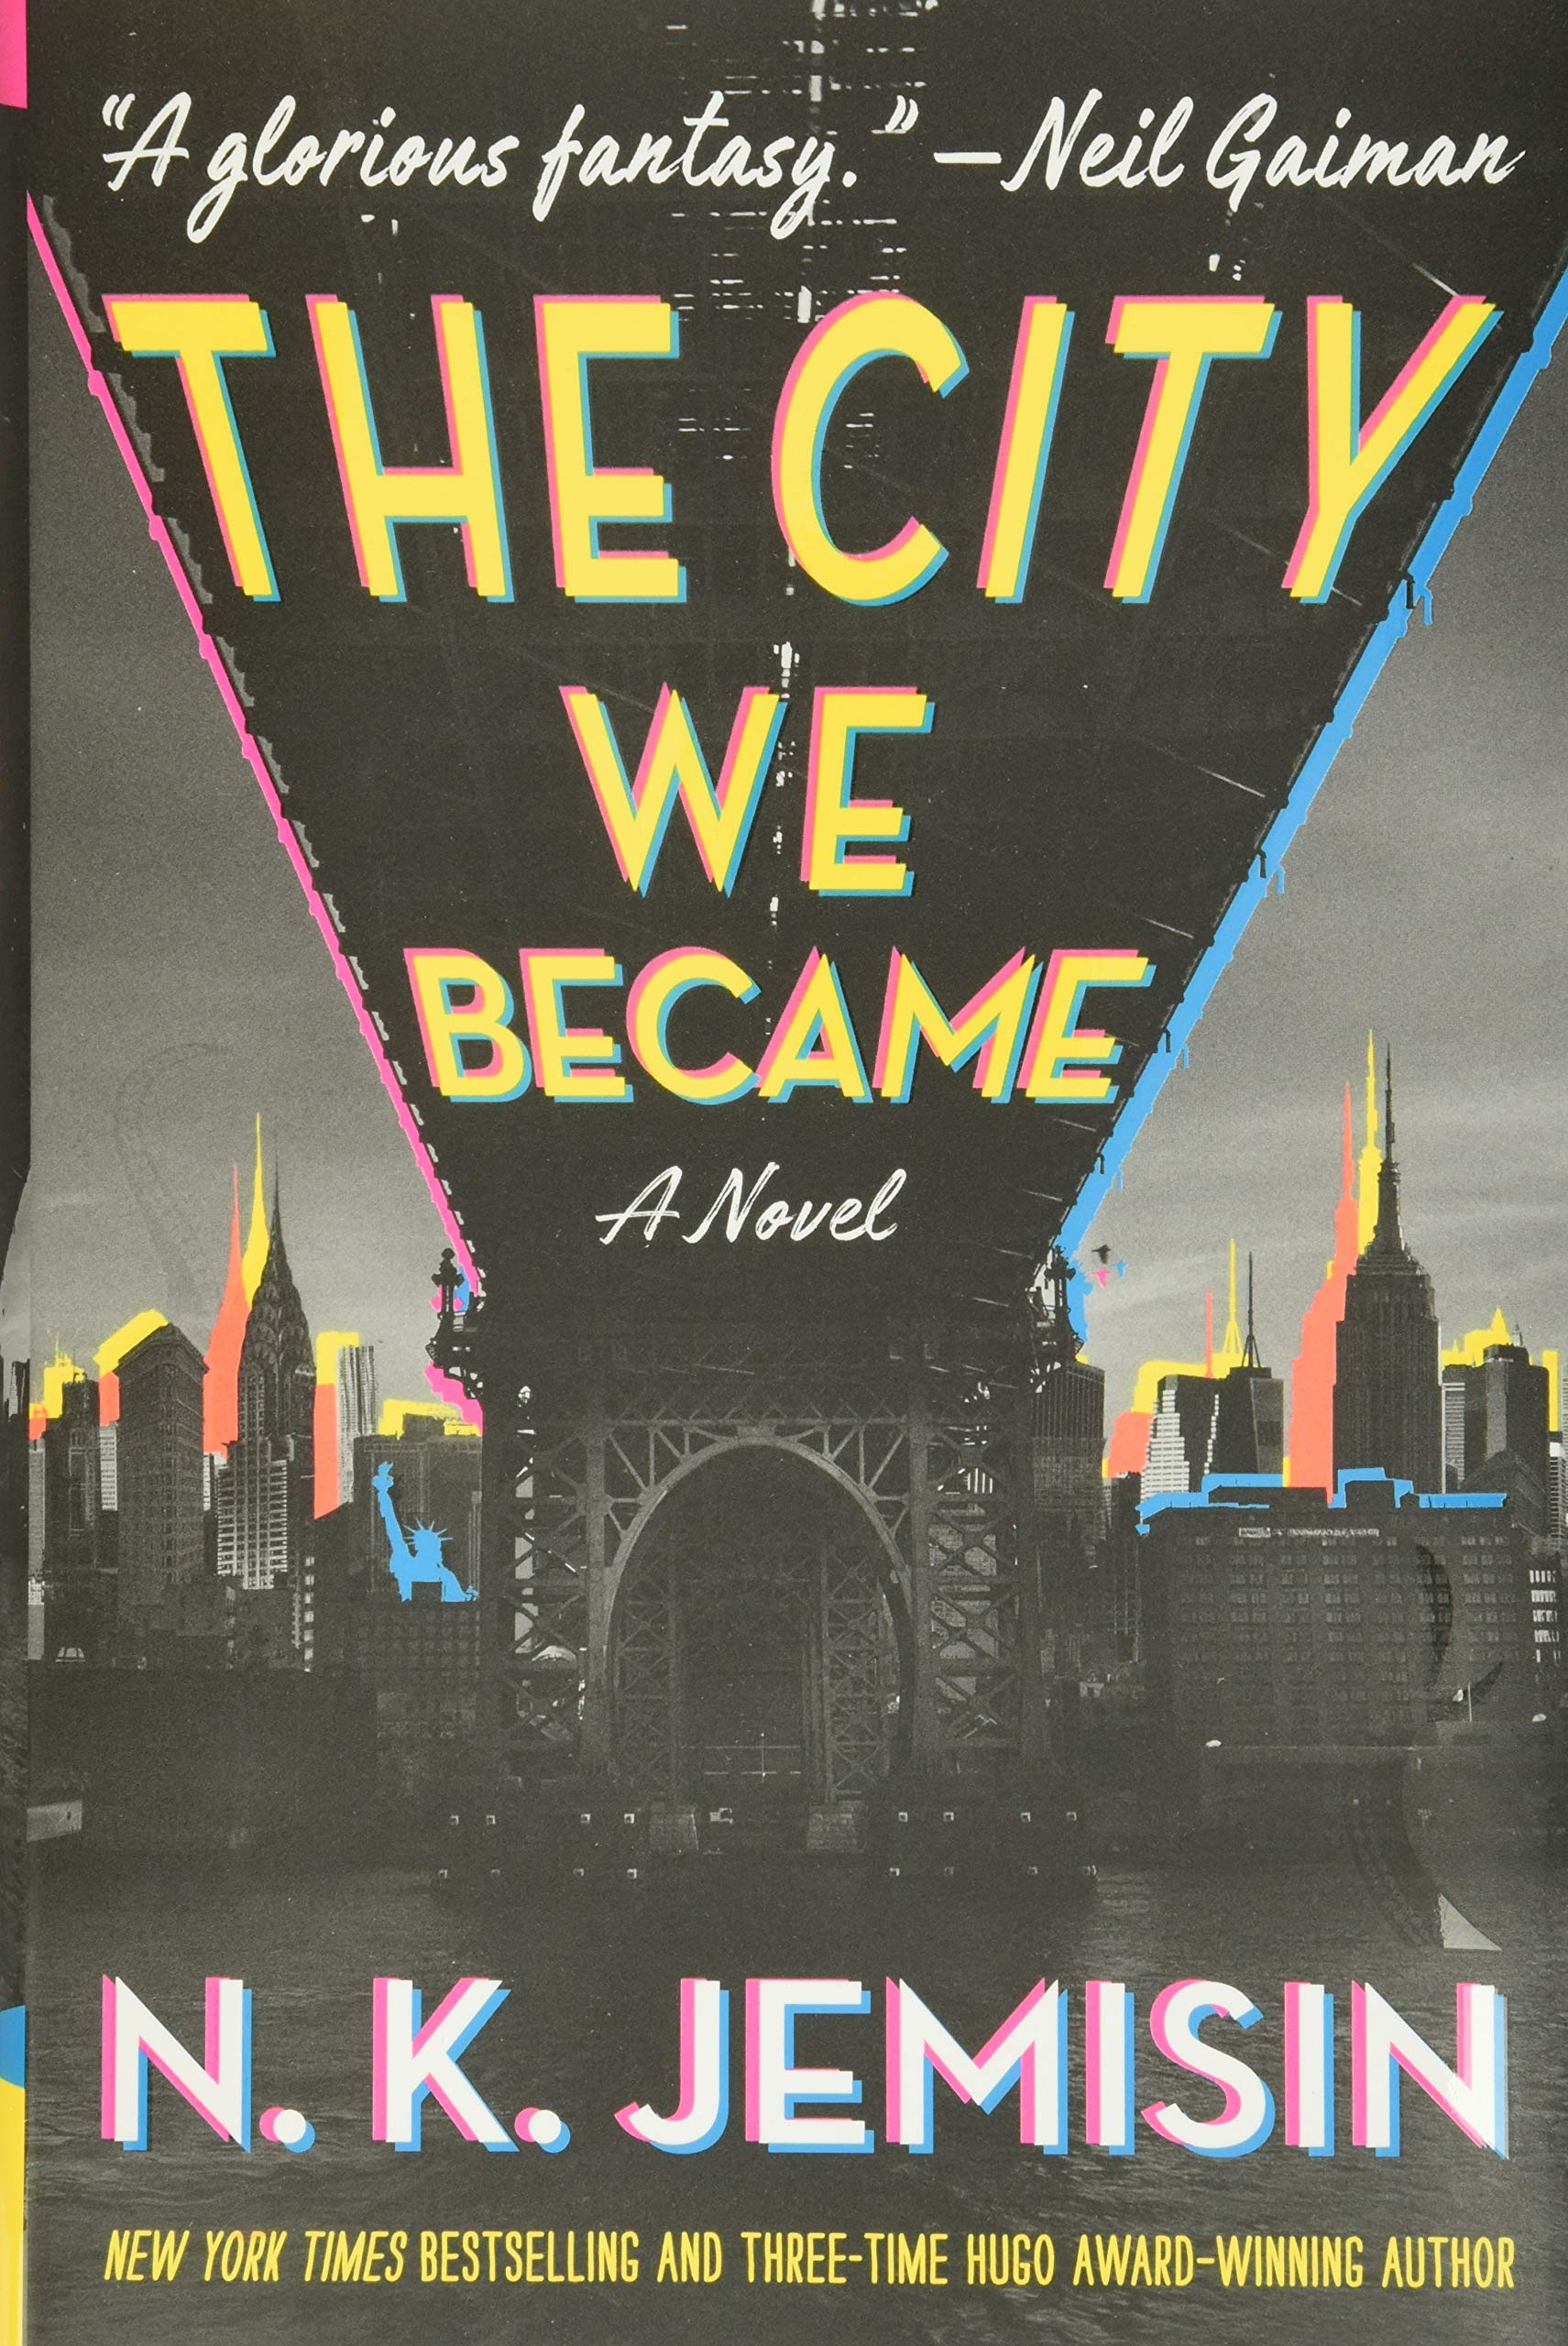 Amazon.com: The City We Became: A Novel (The Great Cities Trilogy, 1)  (9780316509848): Jemisin, N. K.: Books